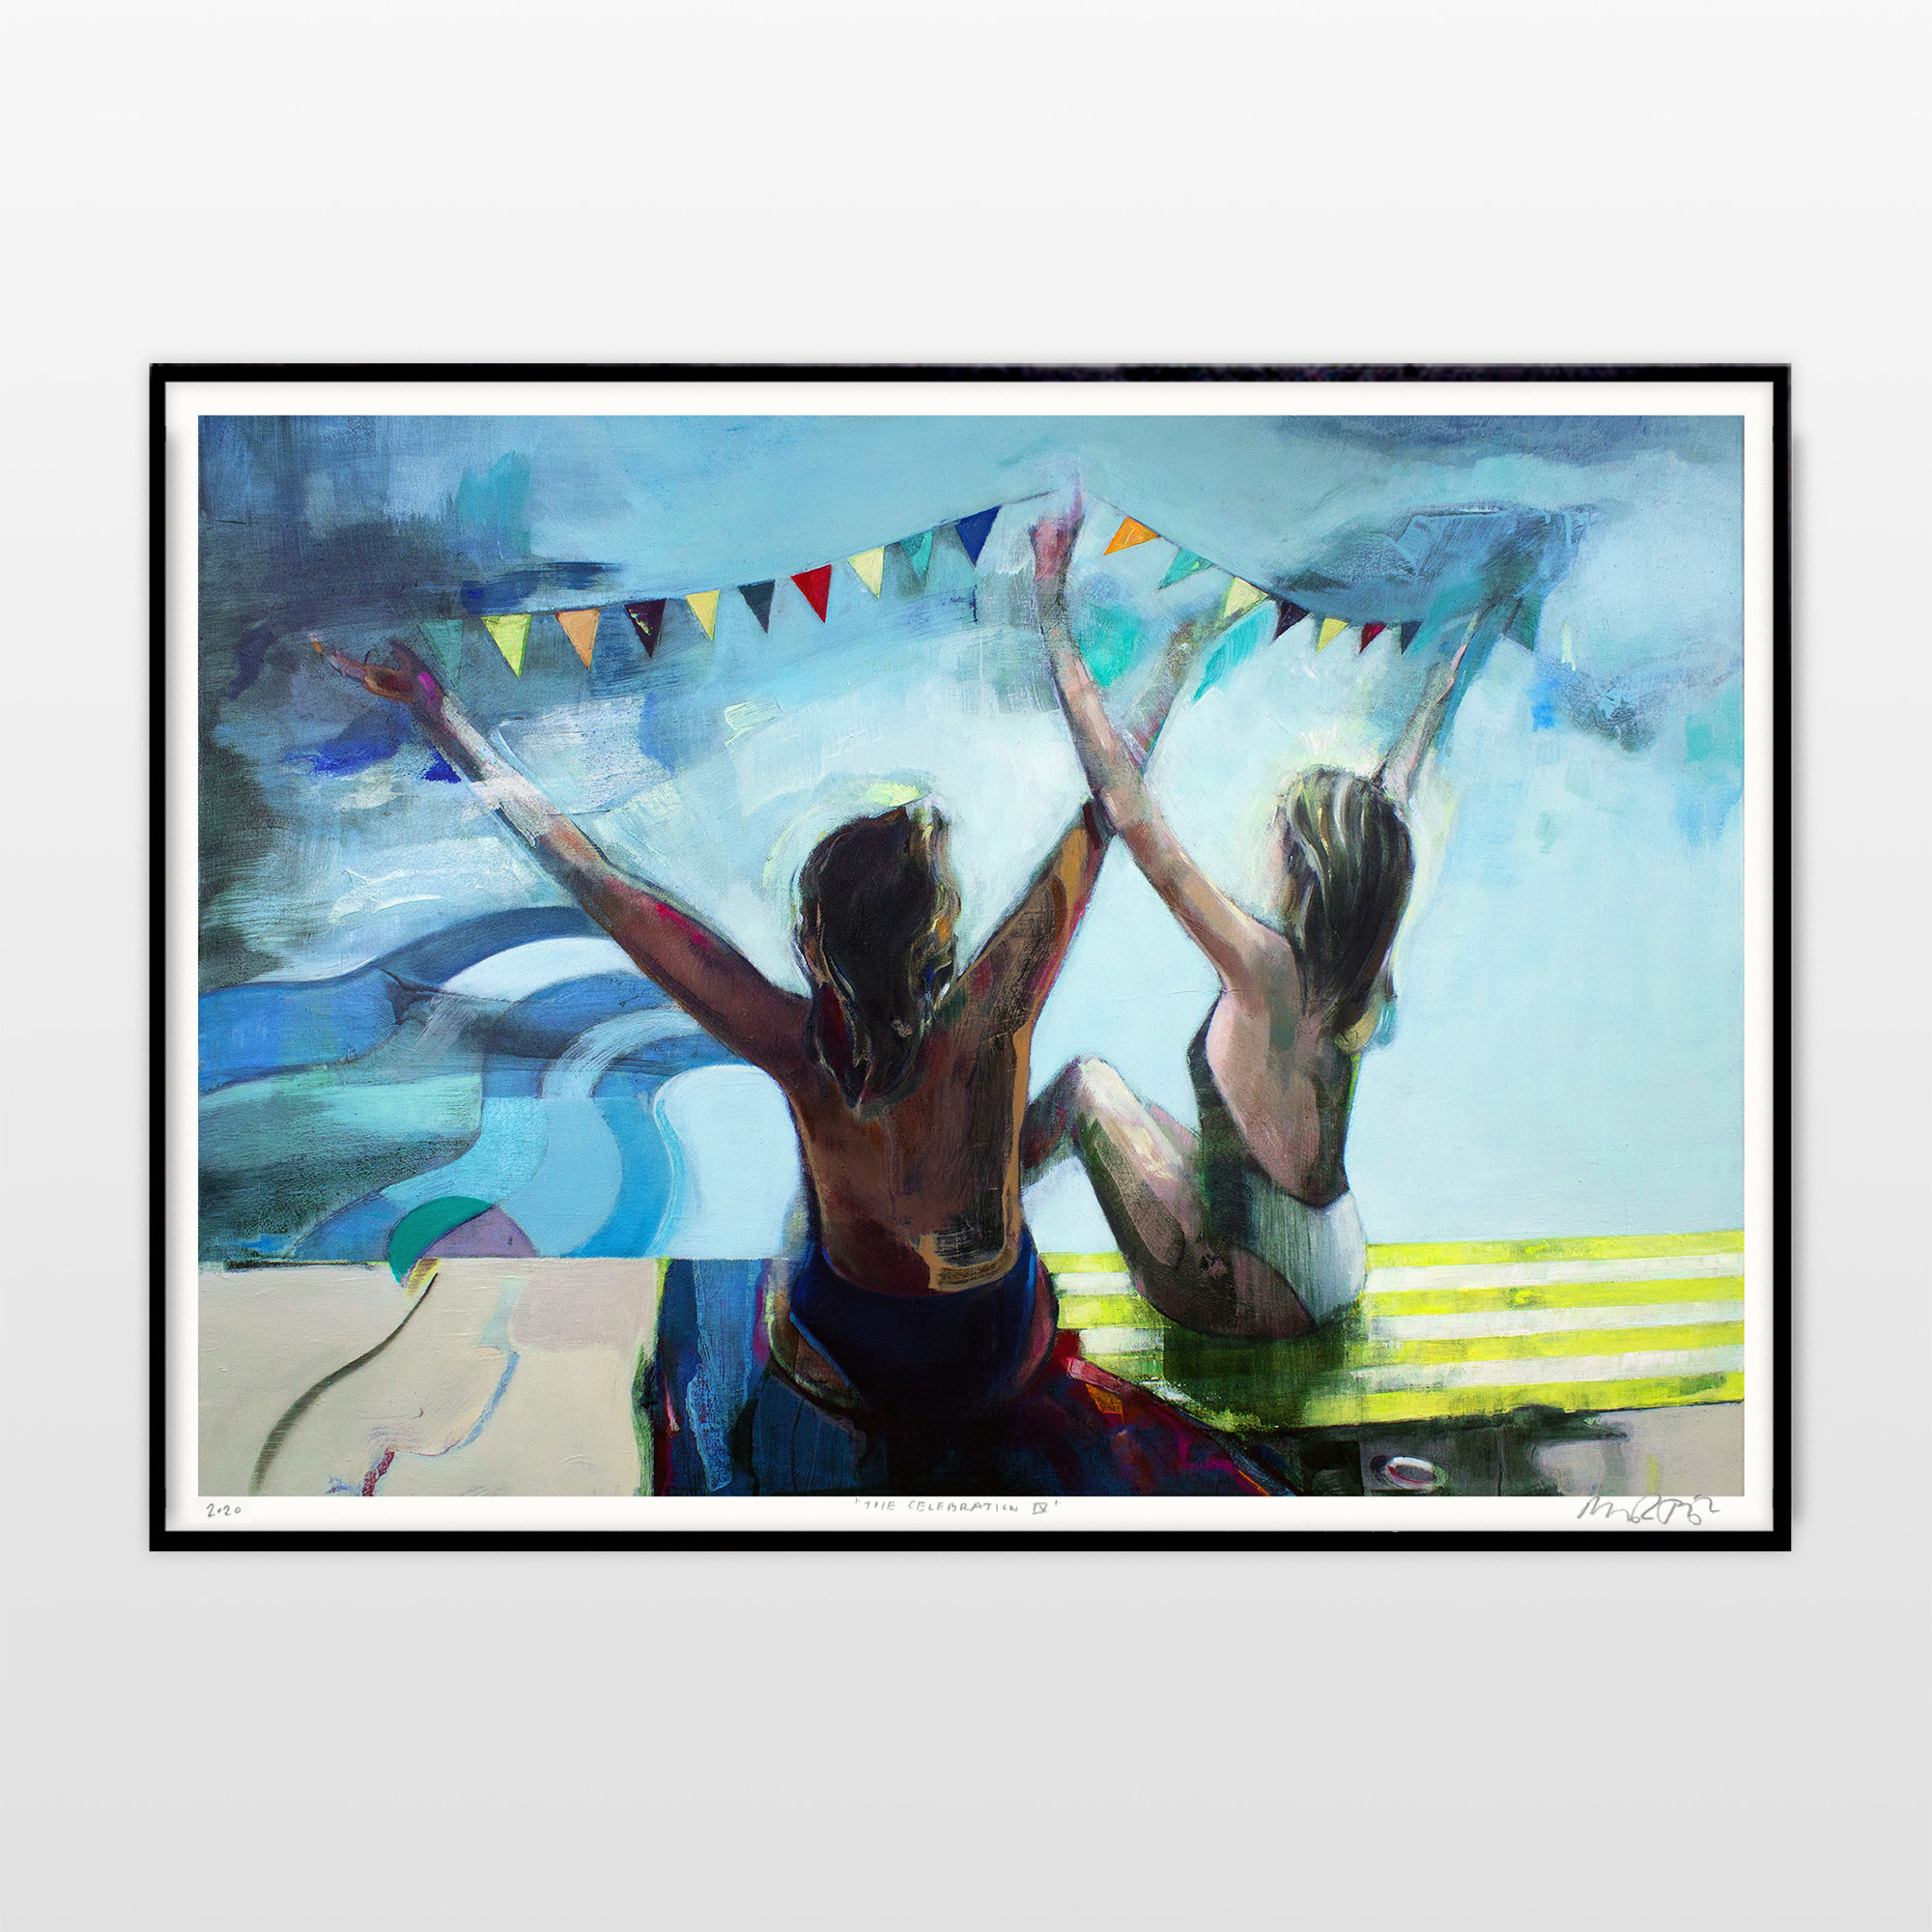 posters-prints, giclee-print, aesthetic, colorful, figurative, graphical, bodies, nature, oceans, people, beige, blue, turquoise, yellow, ink, paper, beach, beautiful, contemporary-art, copenhagen, danish, decorative, design, female, interior, interior-design, modern, modern-art, nordic, posters, romantic, scandinavien, summer, women, Buy original high quality art. Paintings, drawings, limited edition prints & posters by talented artists.